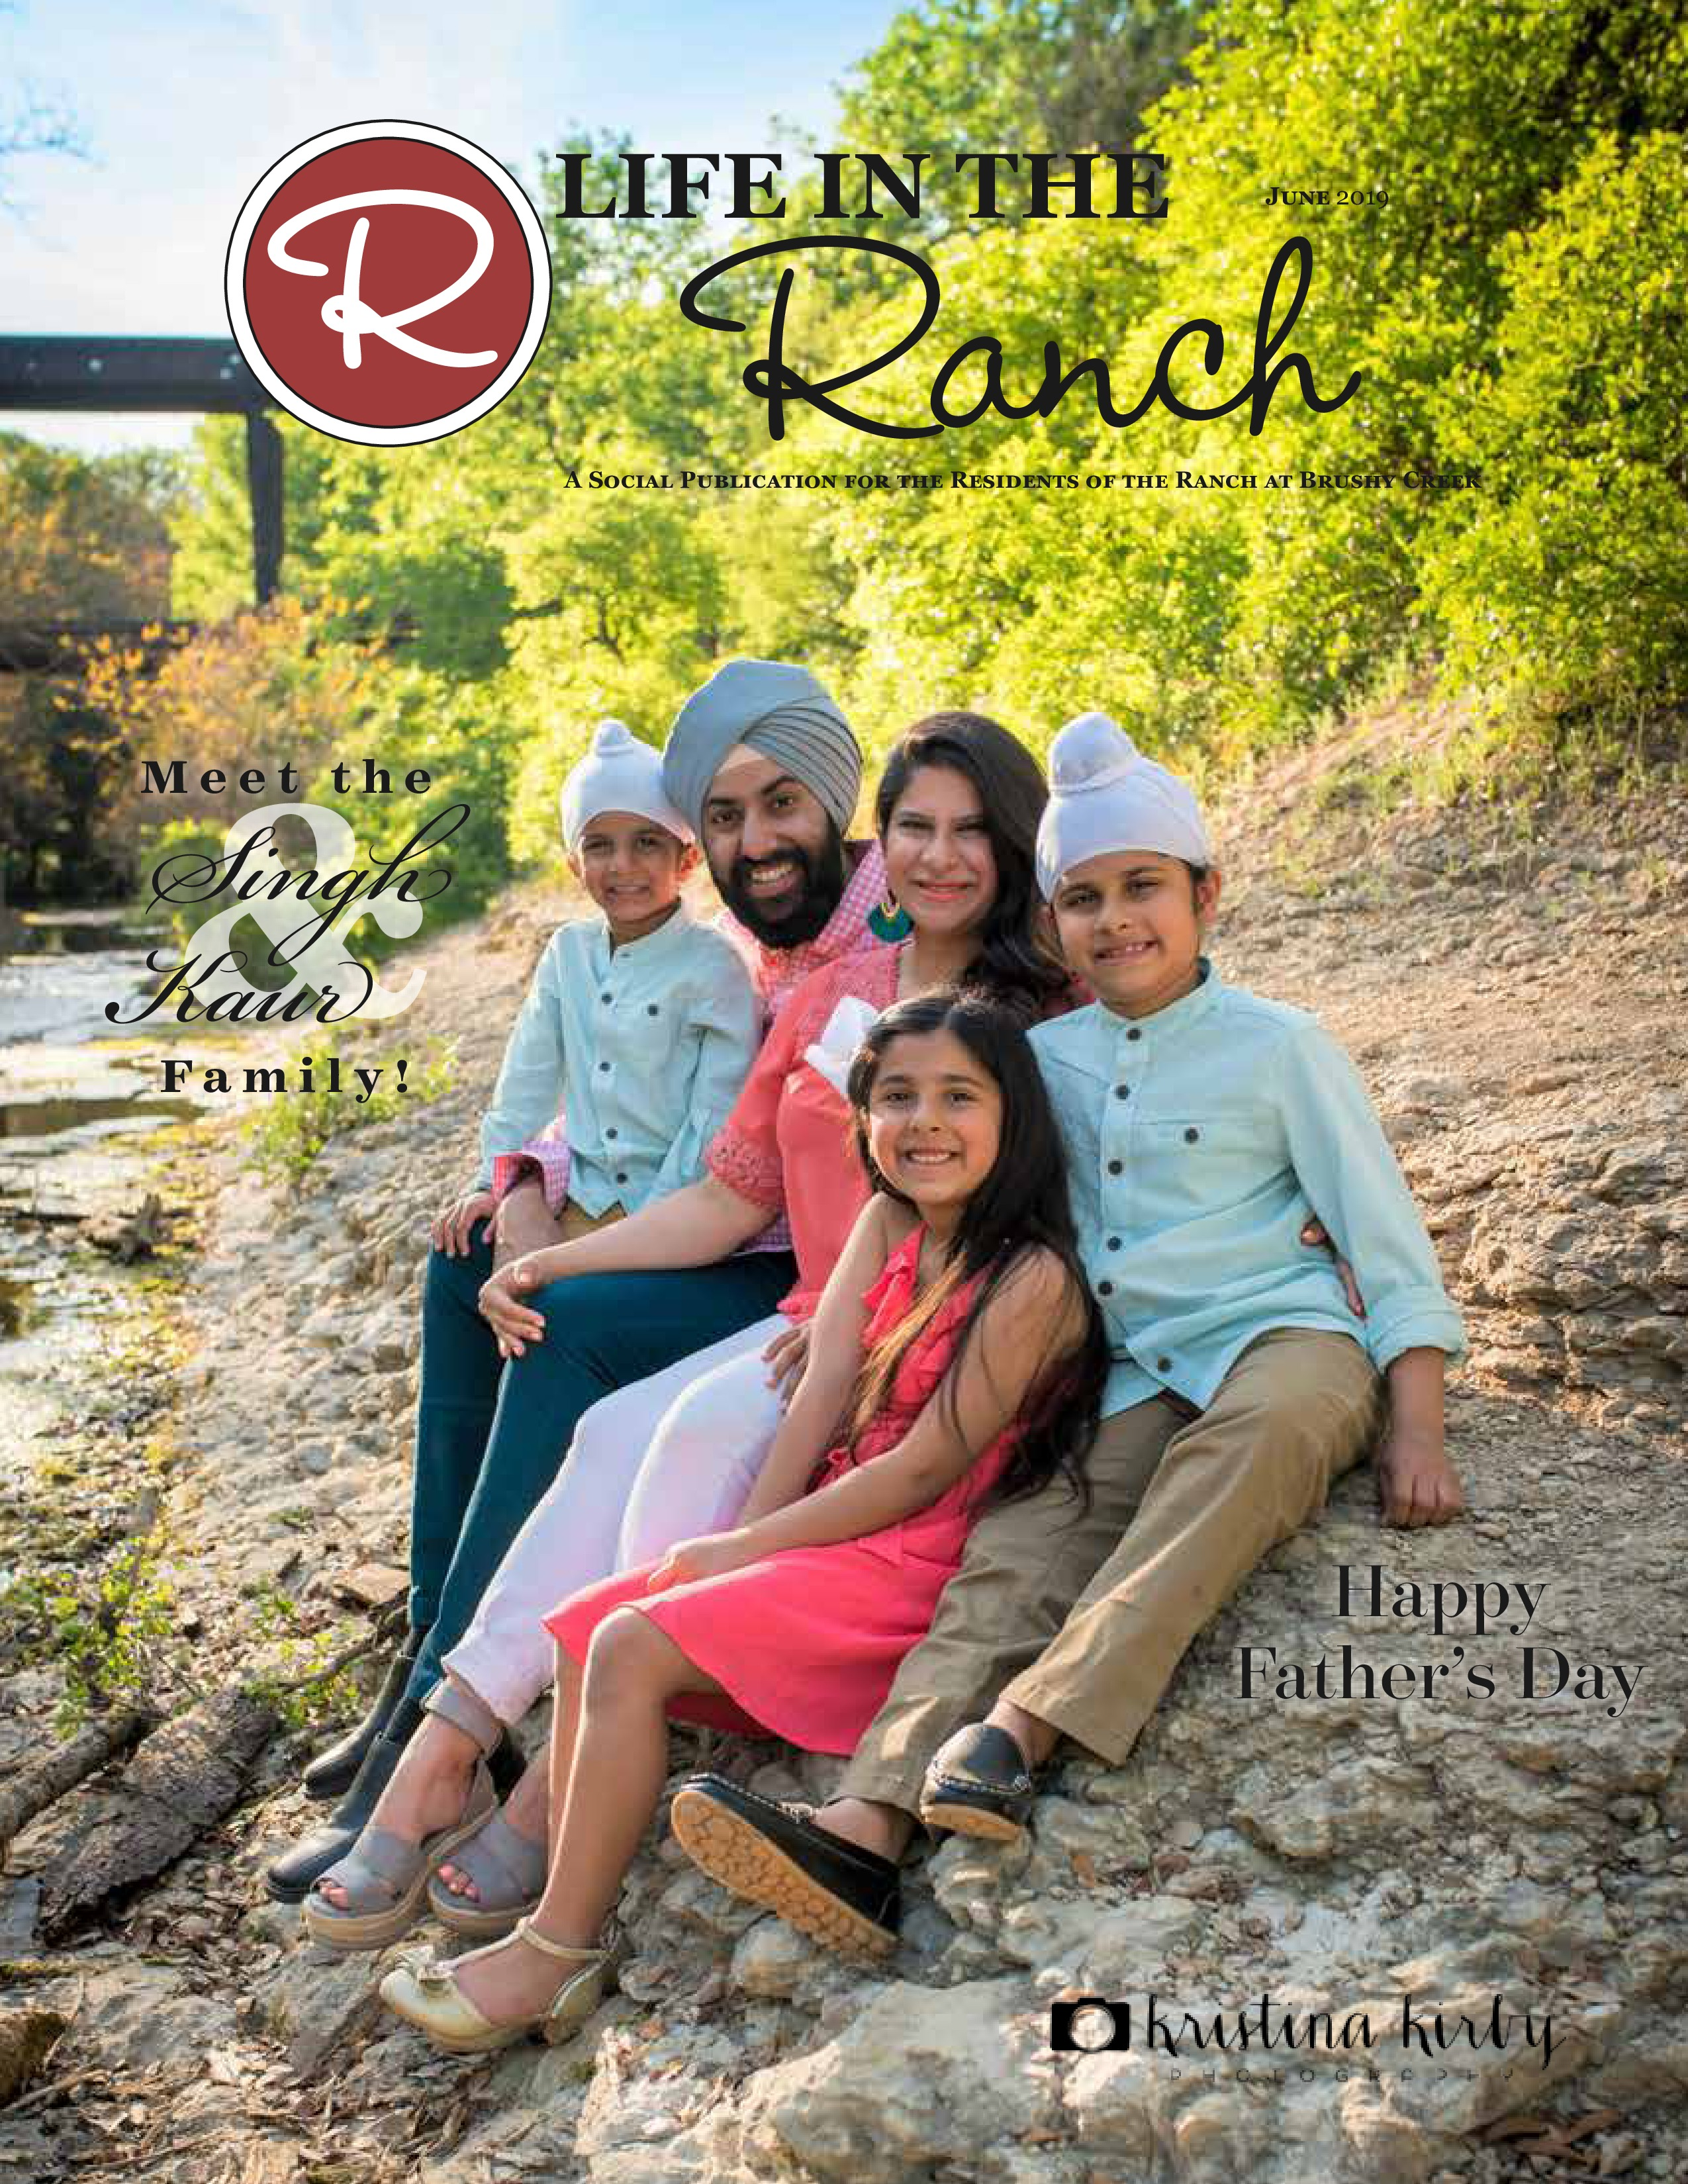 Jun 2019 life in the ranch page 1